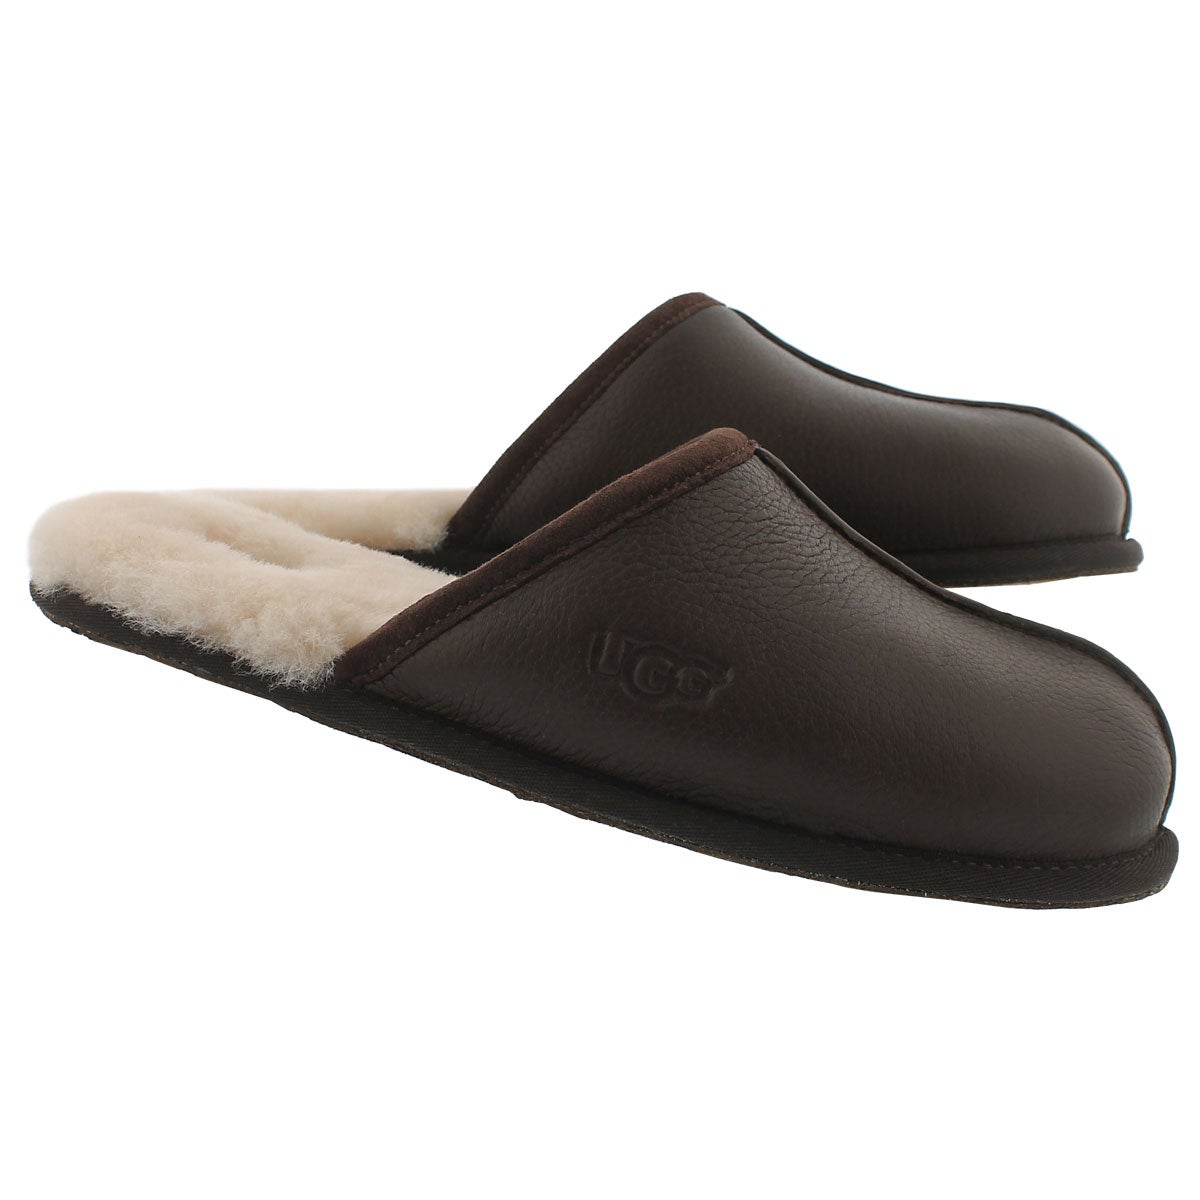 Mns Scuff stout sheepskin slipper